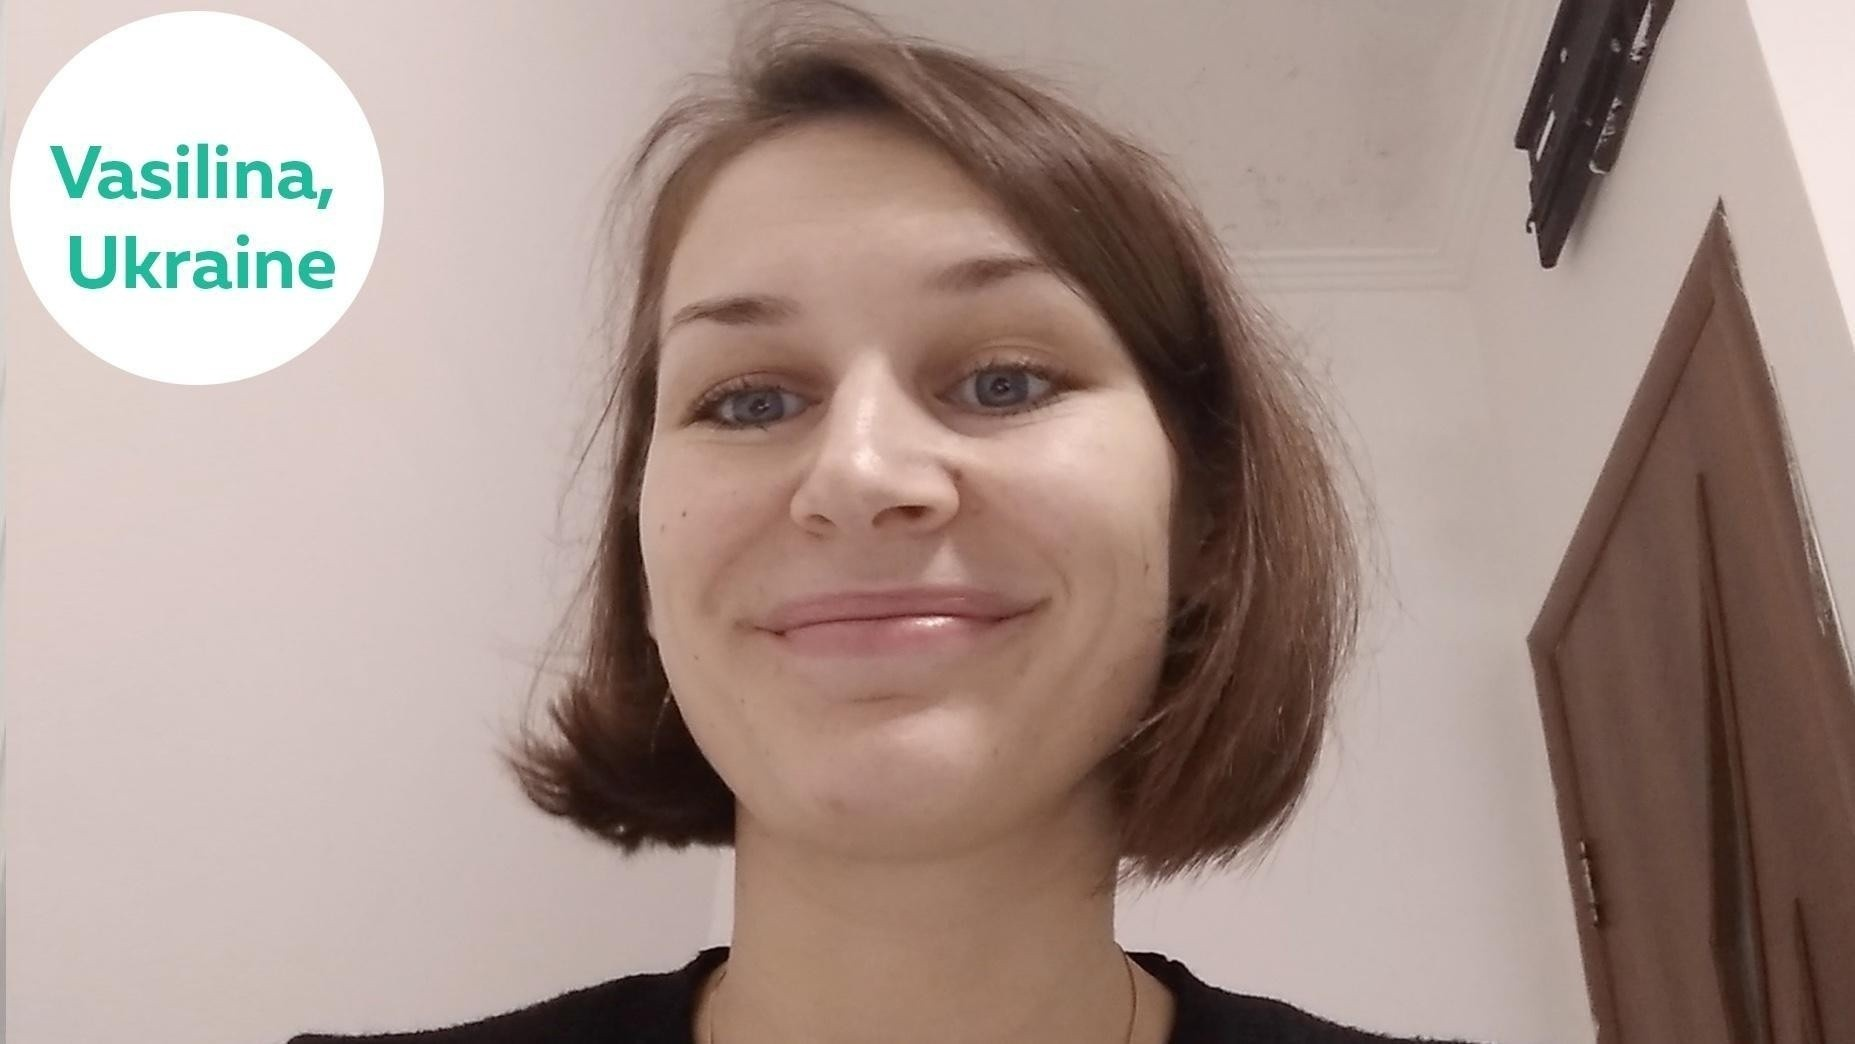 Vasilina from Ukraine shares her success story after joining the English-Everyday speaking course